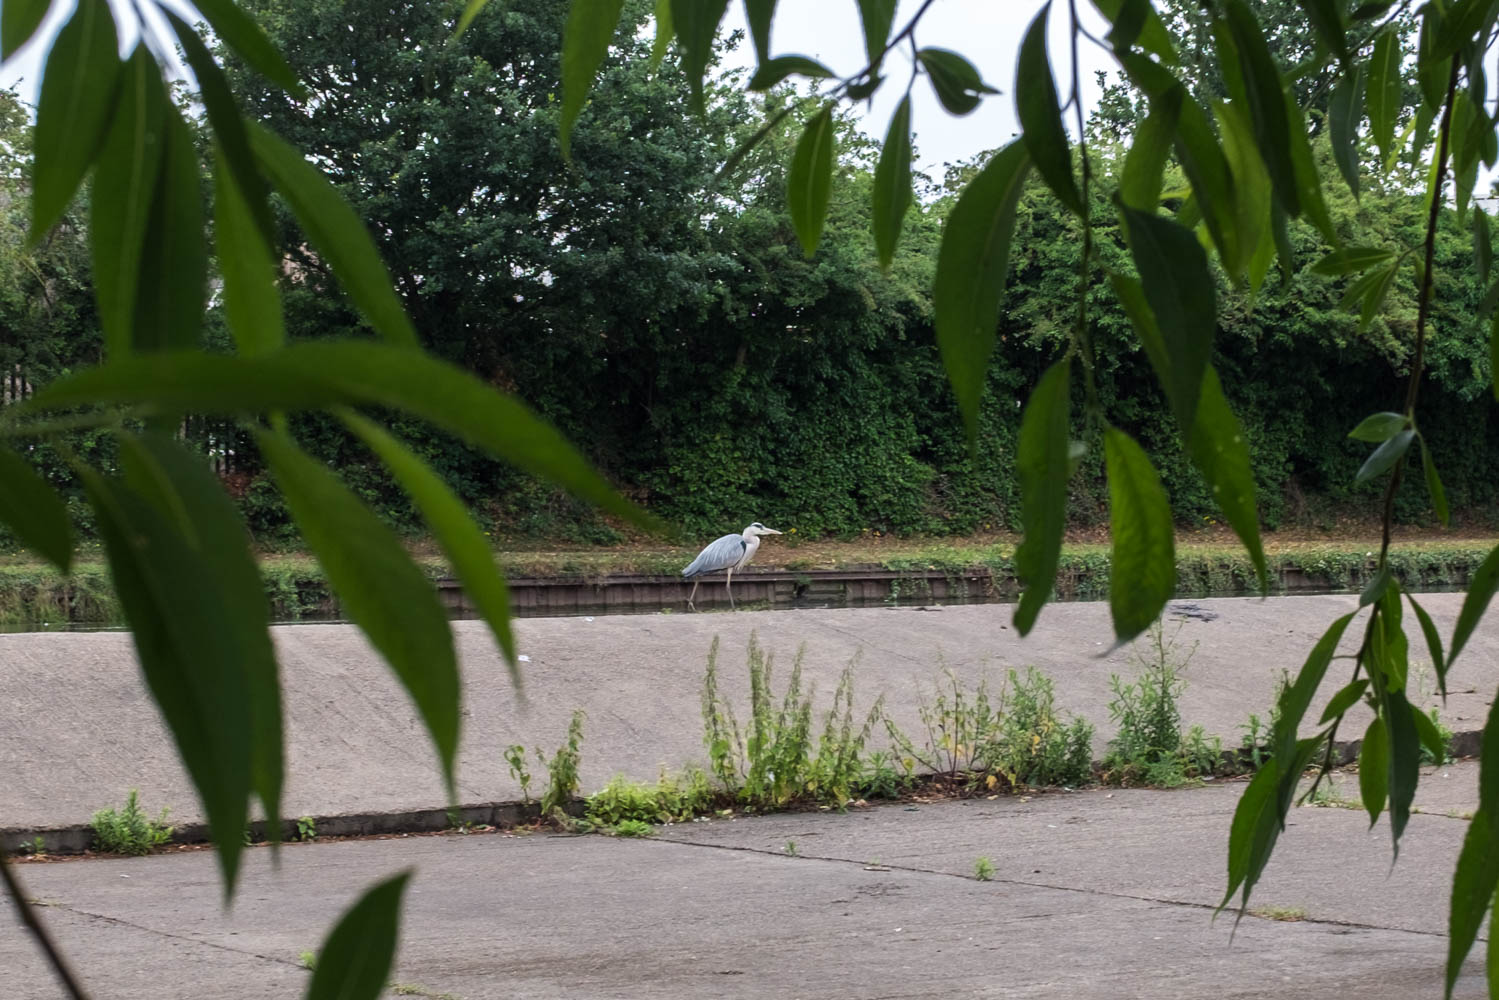 A Heron near a wear on the River Brent in West London underneath the Motorway!